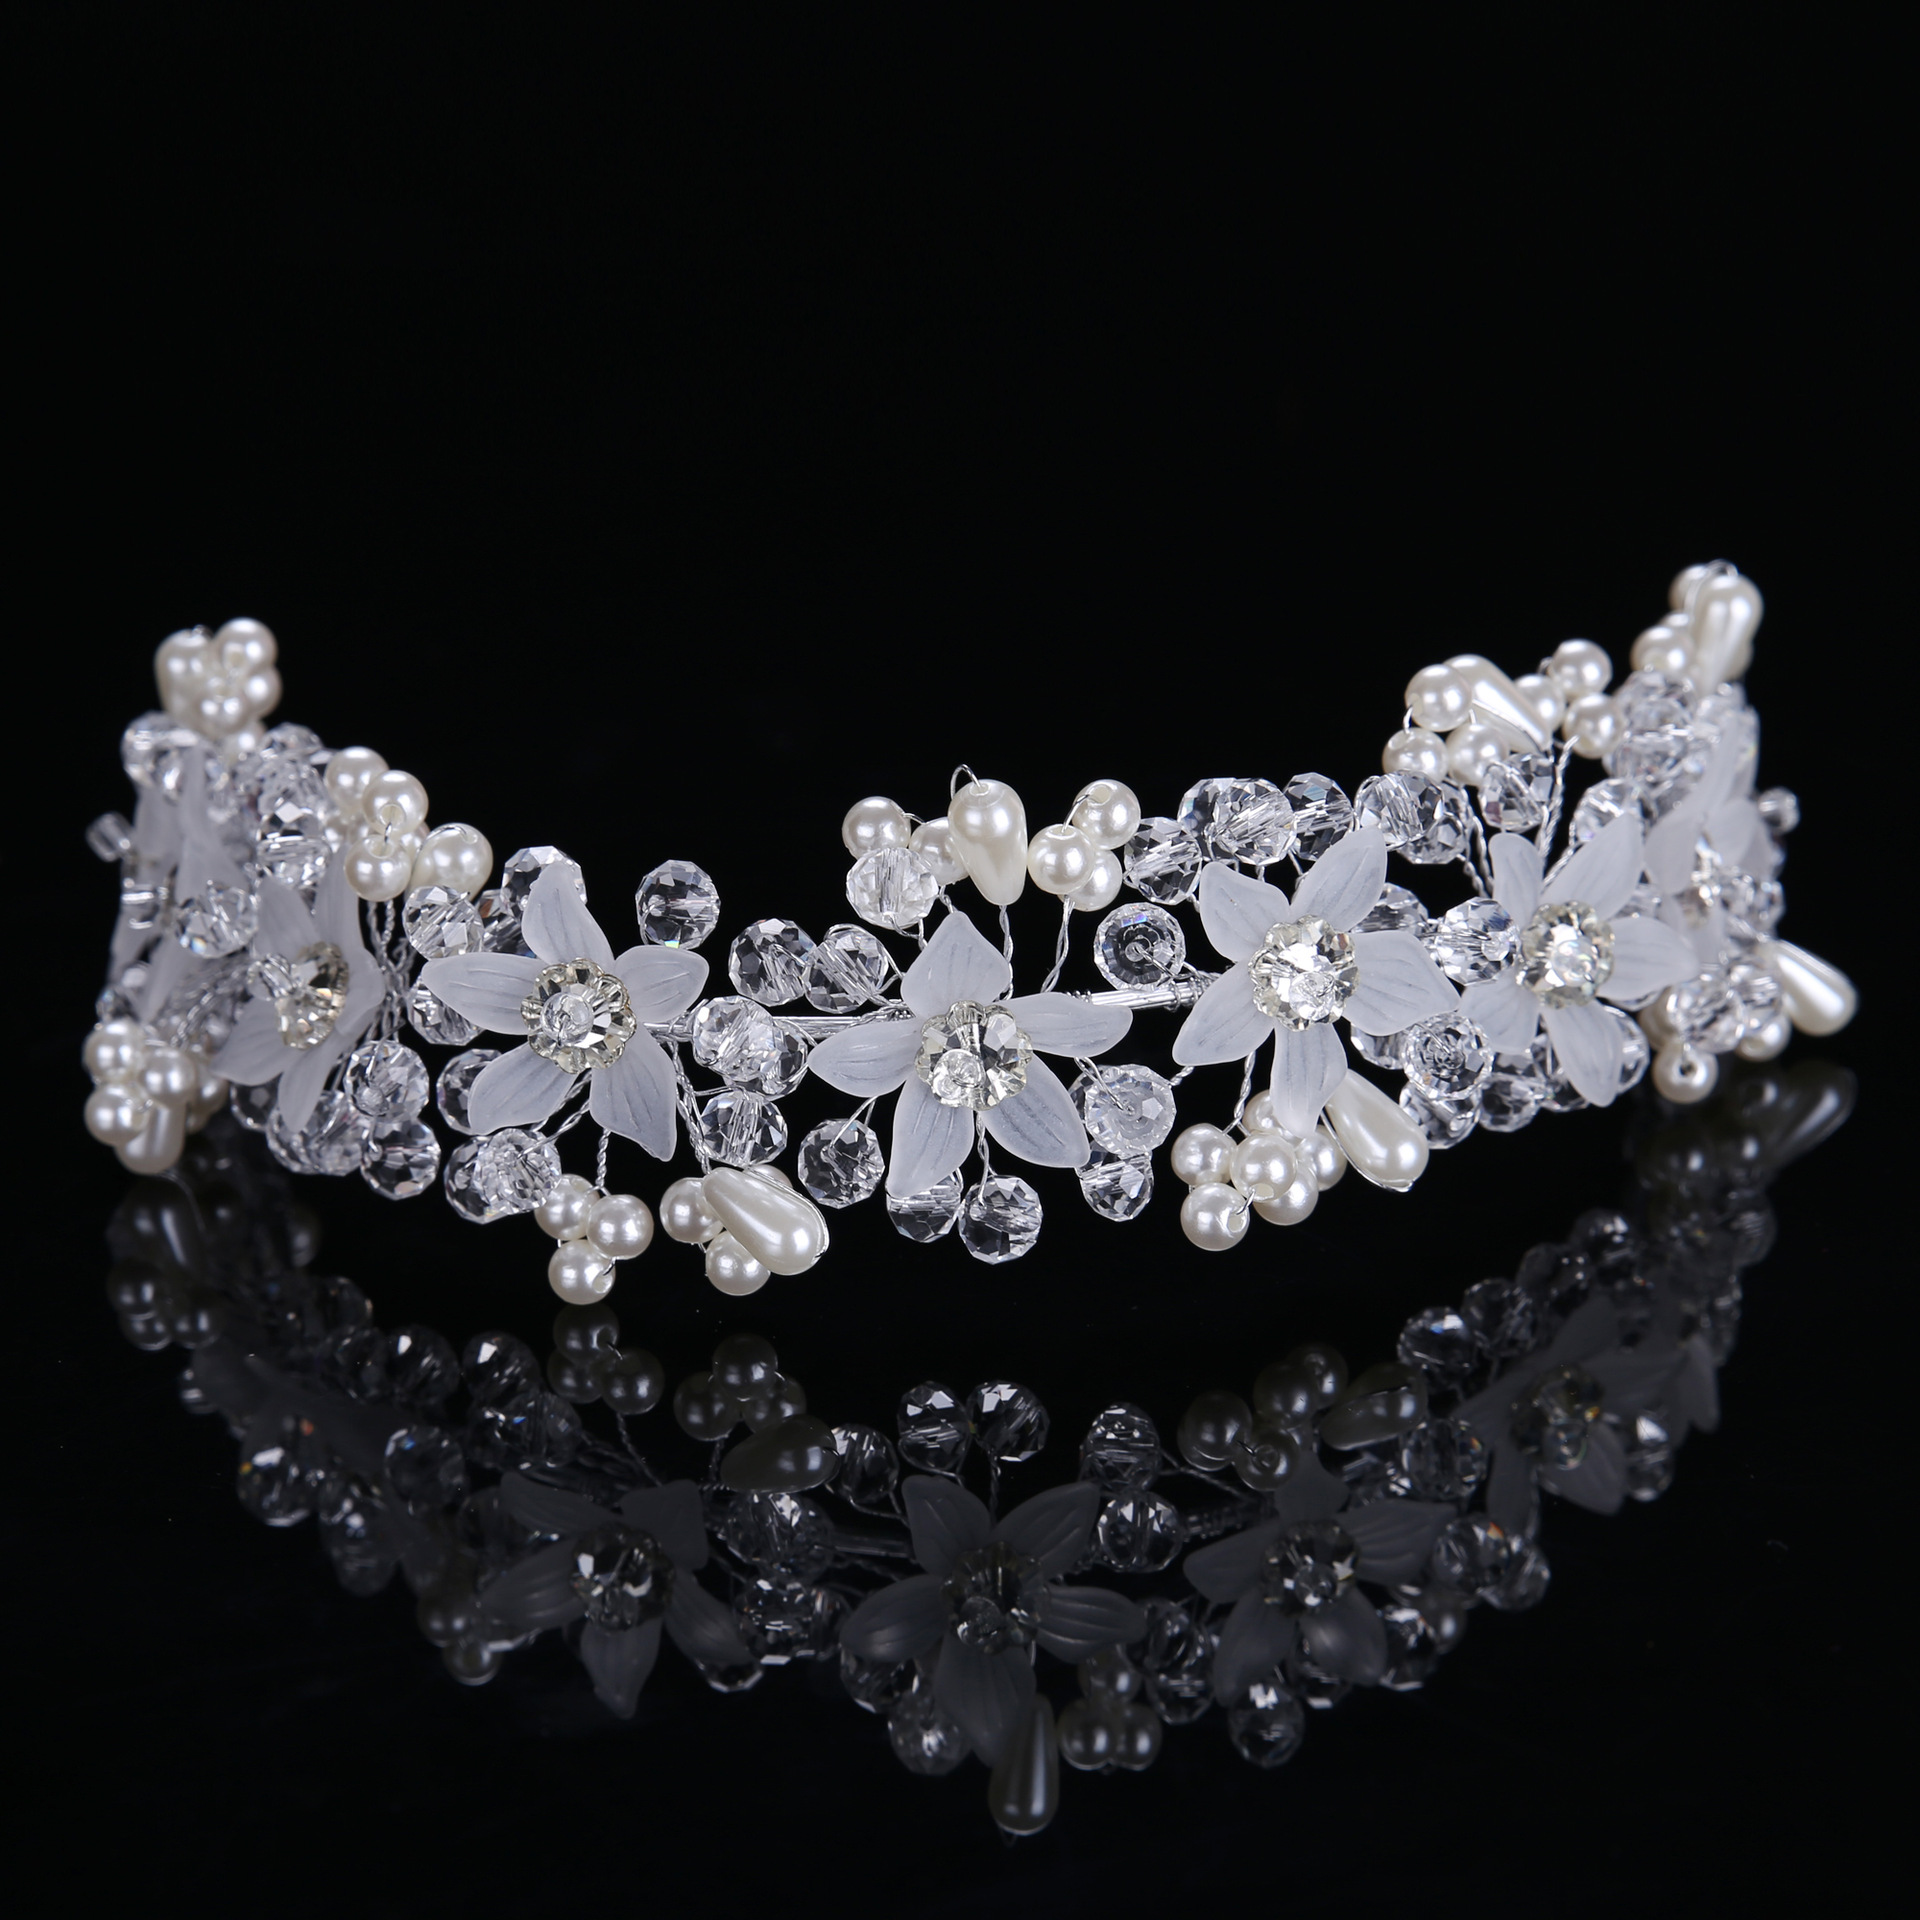 Korean Bride Handmade Crystal Flower Hair Band Photo Studio With Makeup Bride Wedding Accessories Headband